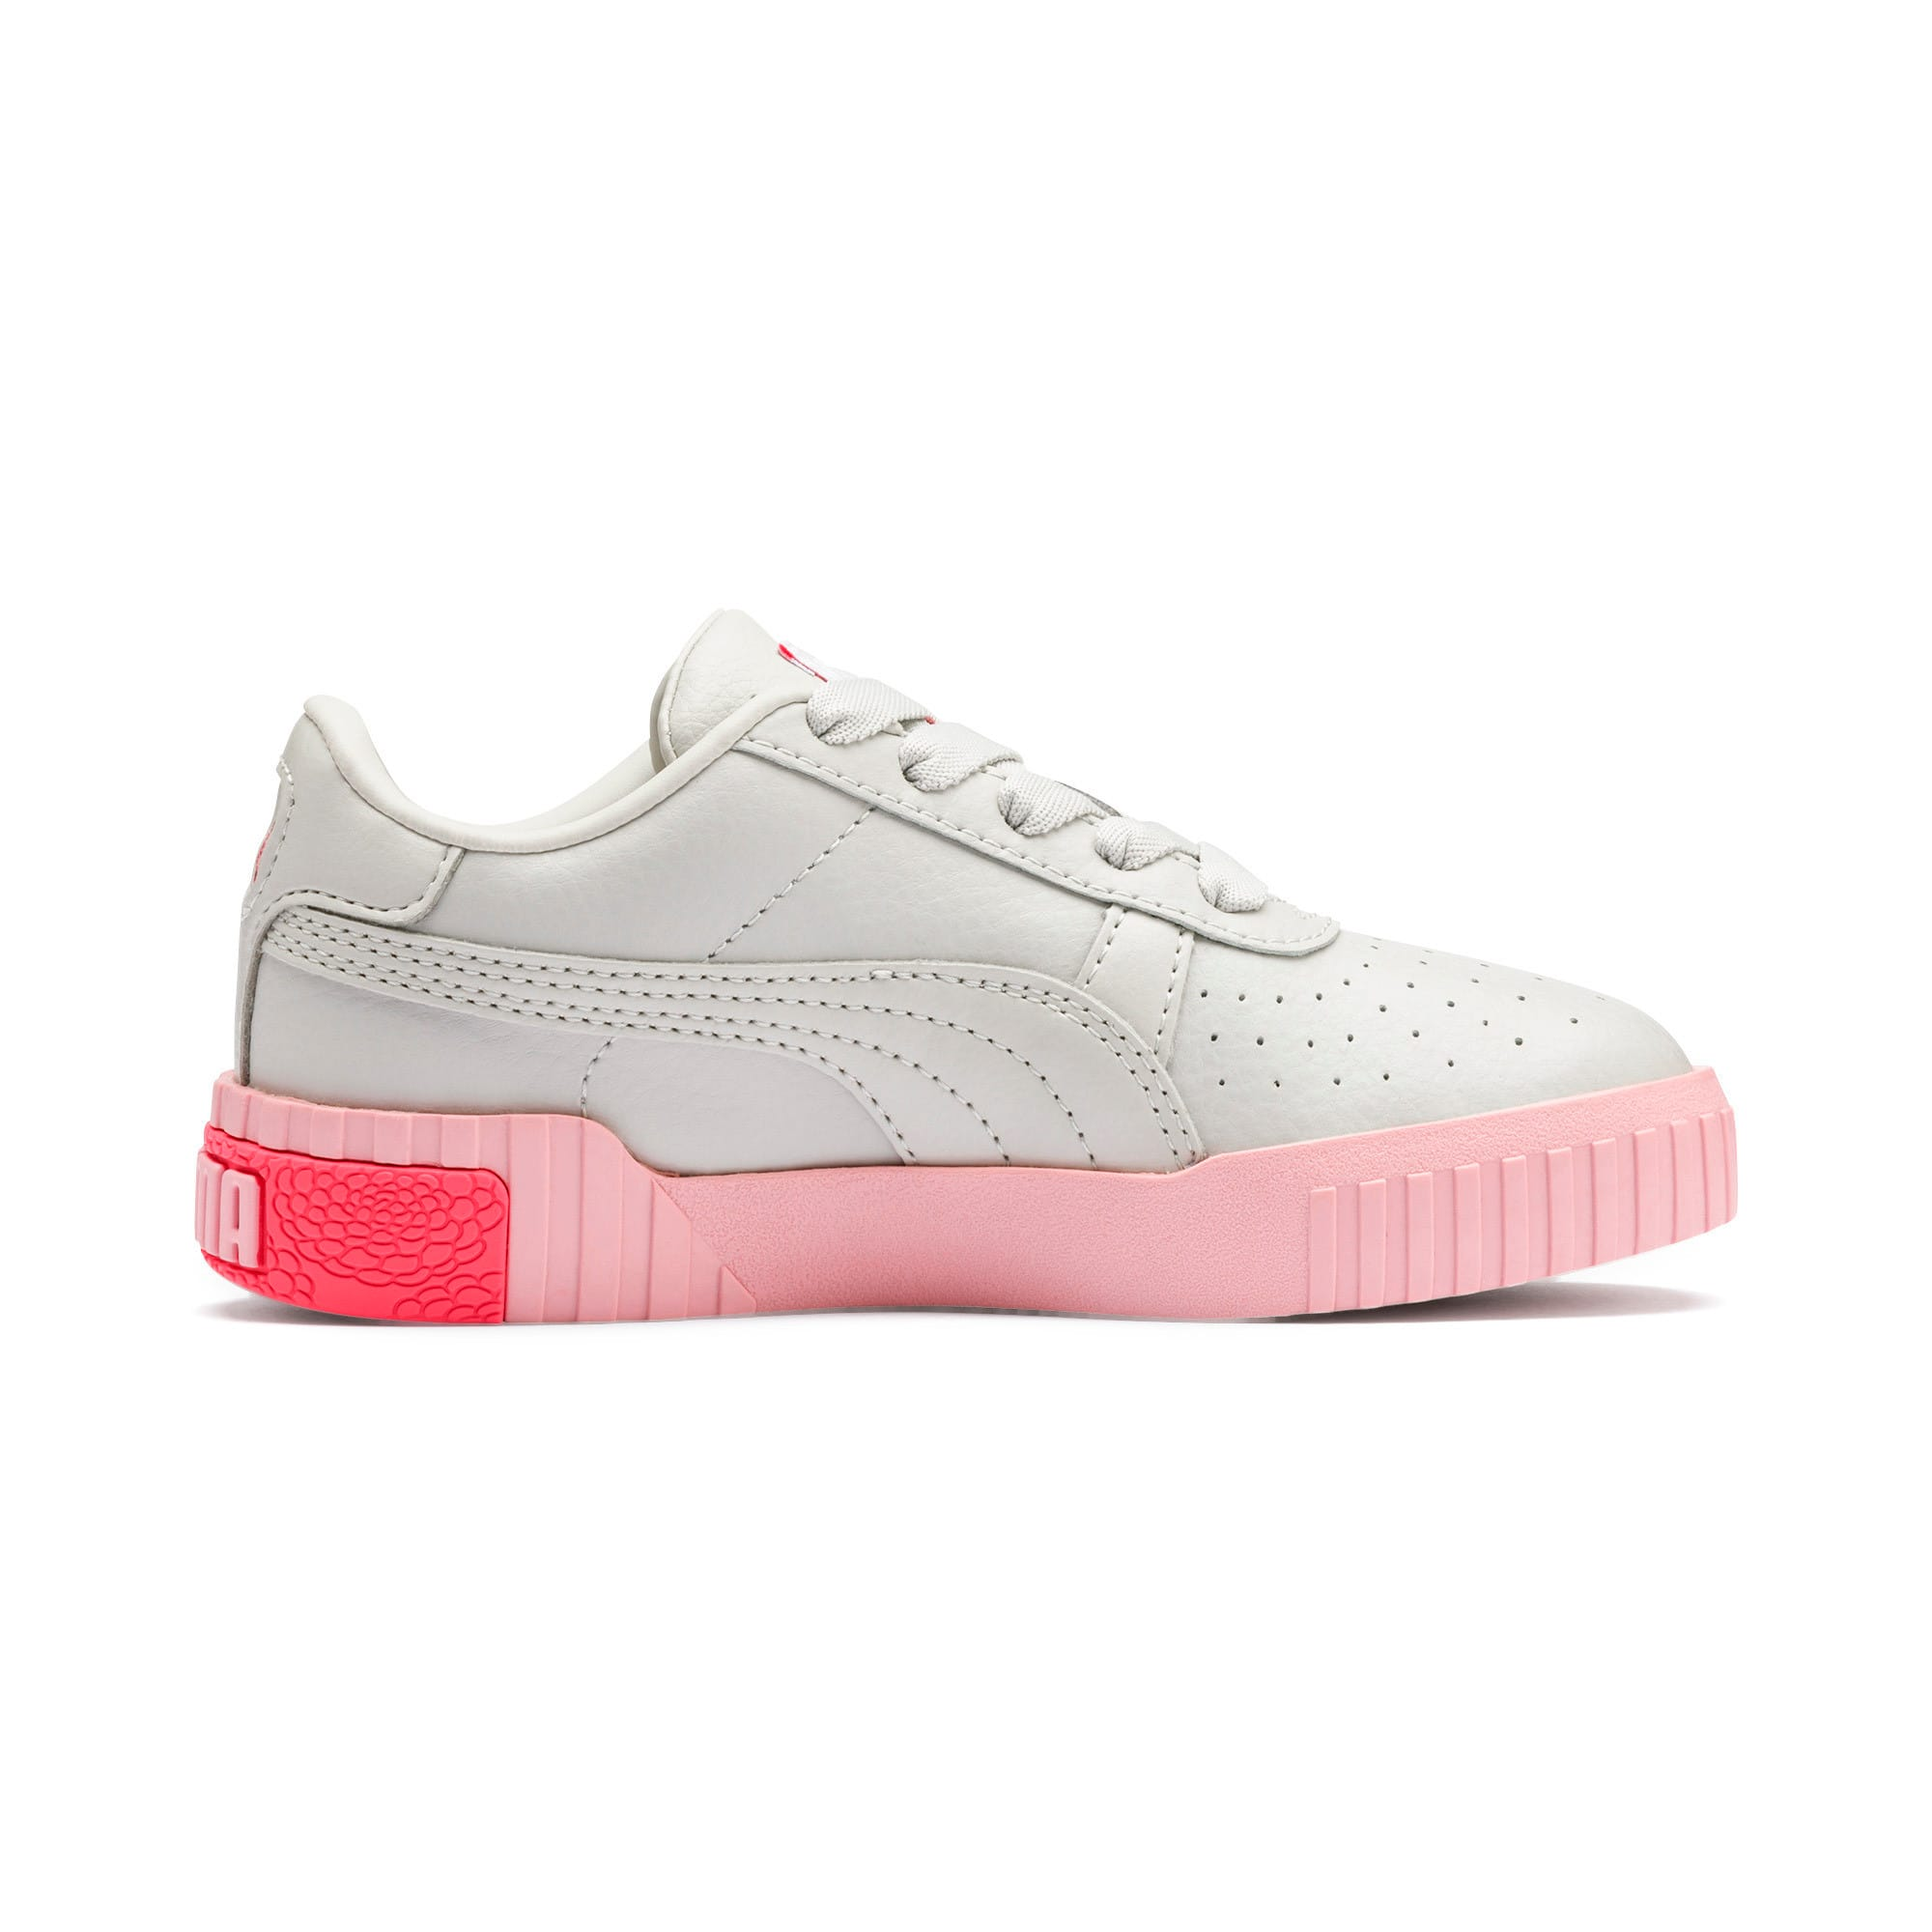 Thumbnail 5 of Cali Kids' Mädchen Sneaker, Gray Violet-Calypso Coral, medium